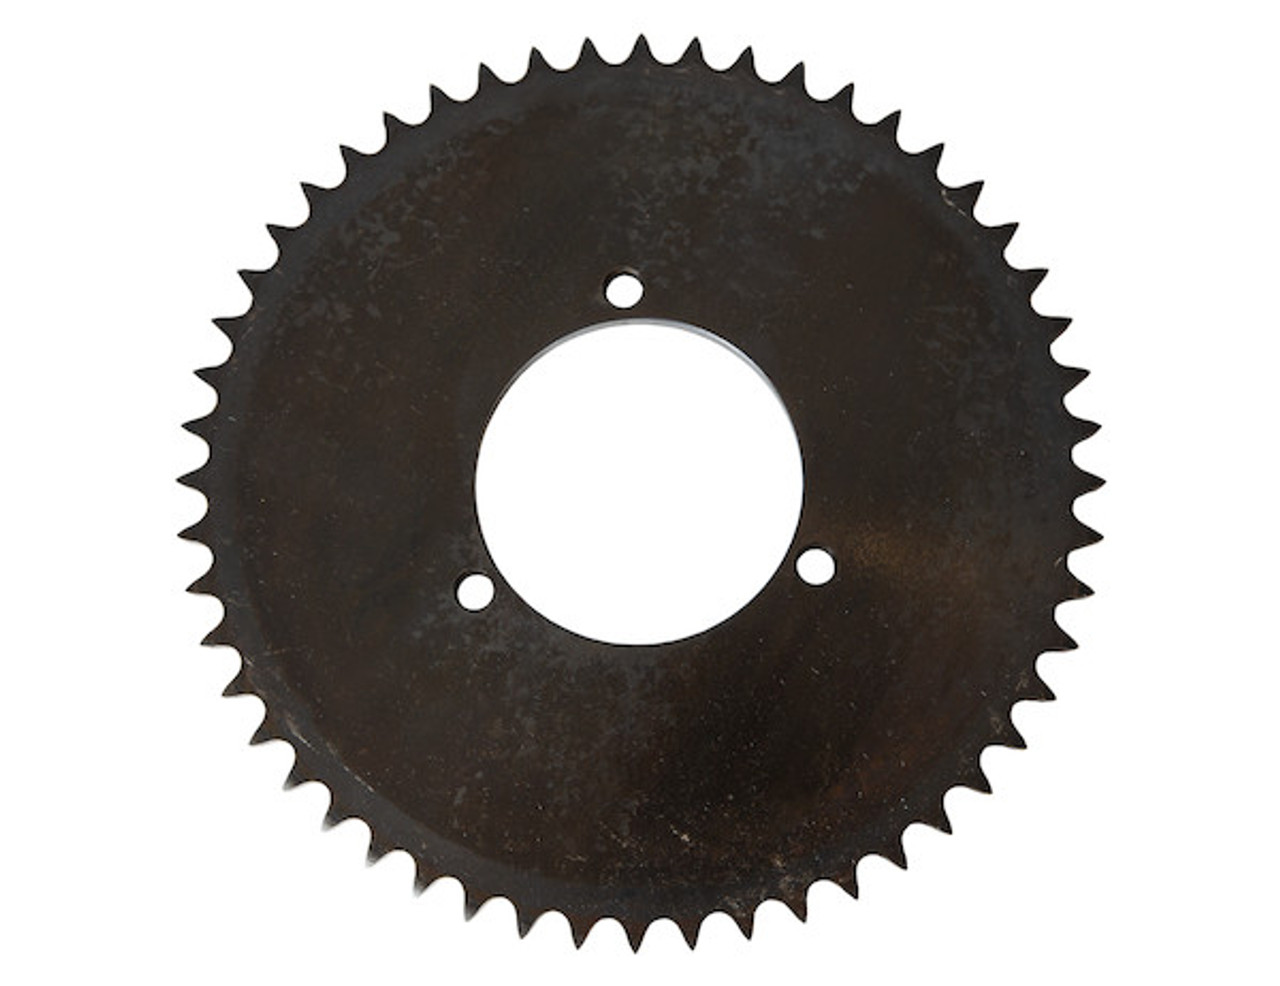 BUYERS 1411800 Replacement 52-Tooth Clutch Sprocket for SaltDogg Salt Spreader 1